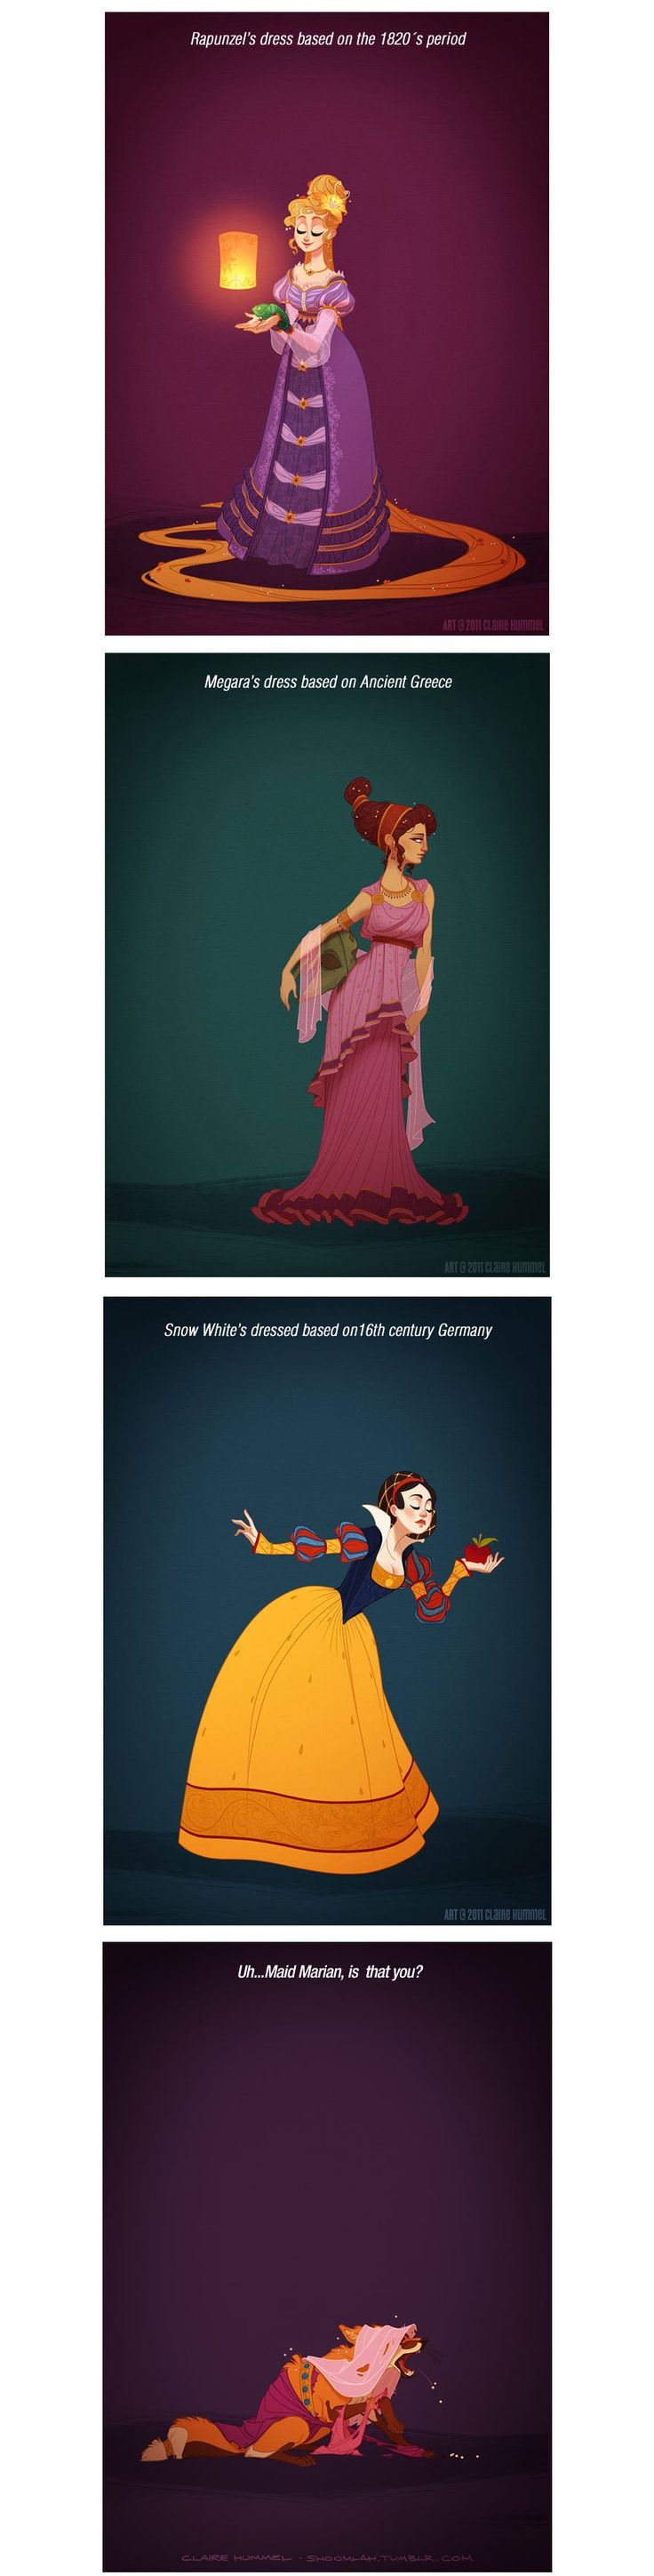 If Disney Princesses Wore Historically Accurate Outfits